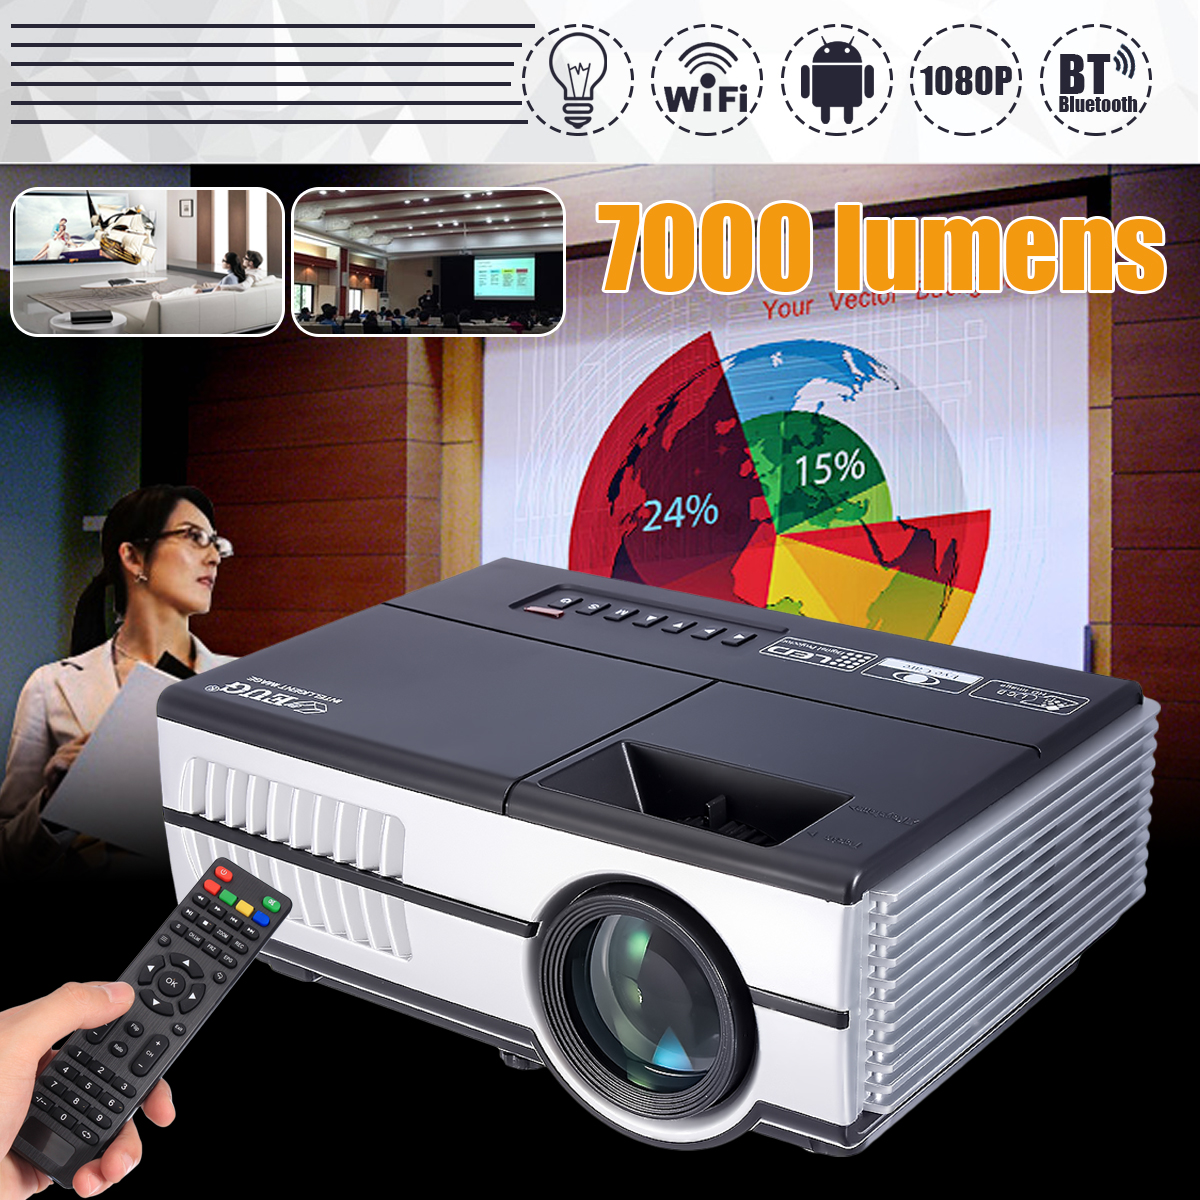 Max 7000Lumens 1080P Full HD LED Projector 3D Home Theater Cinema LCD Wireless HDMI AV/VGA/USB/SD/HDMI/TV Multimedia Beamer cocoepps casual denim ankle length trousers large size high waist fashion women s jeans 2017 women stretch pencil pants 5xl 6xl